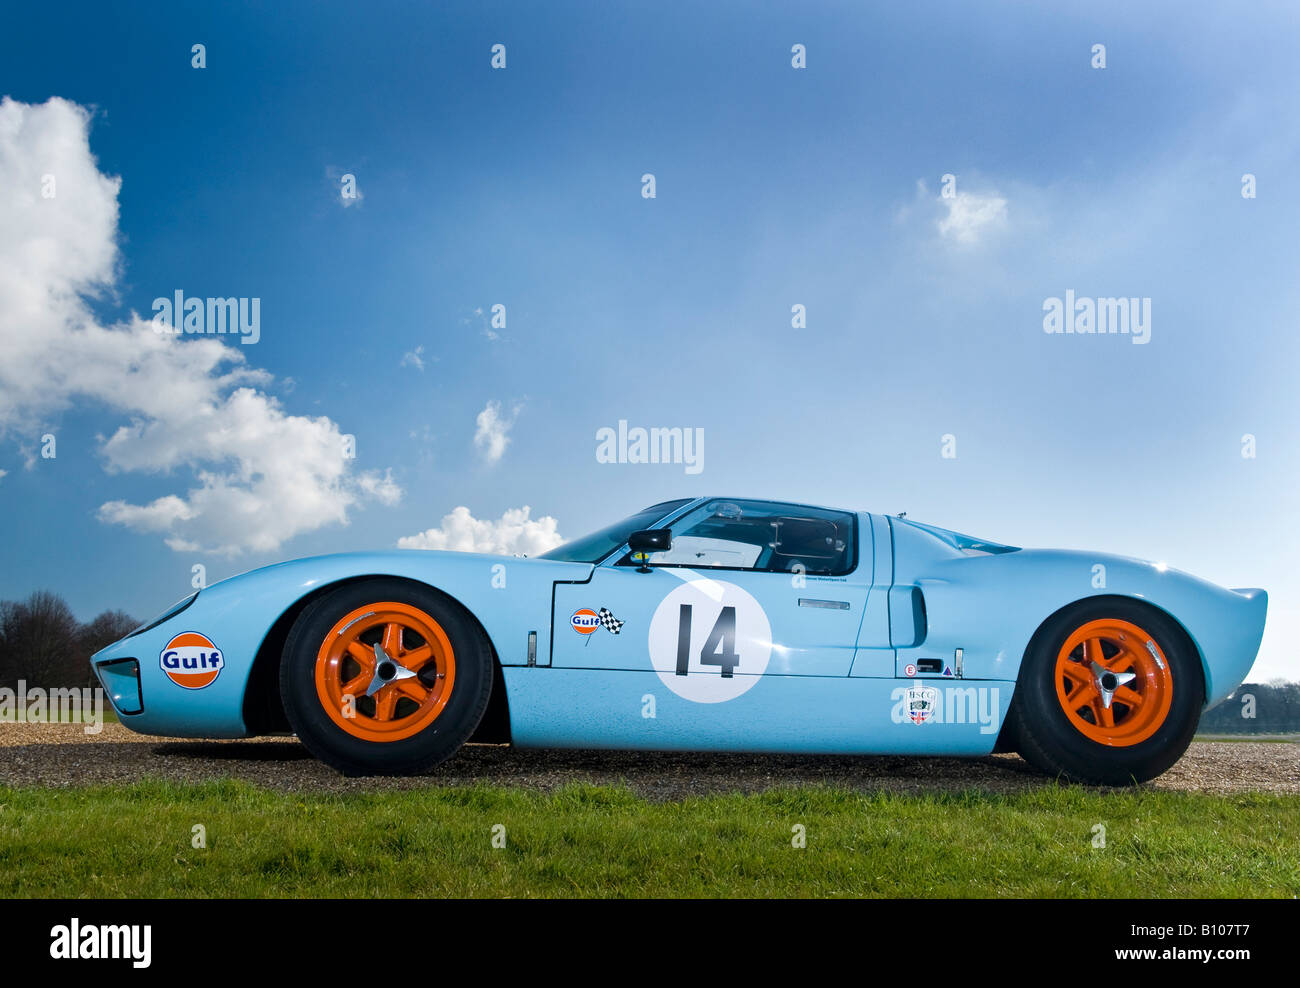 Ford Gt Gt Le Mans Racing Car Auto Gulf Engine